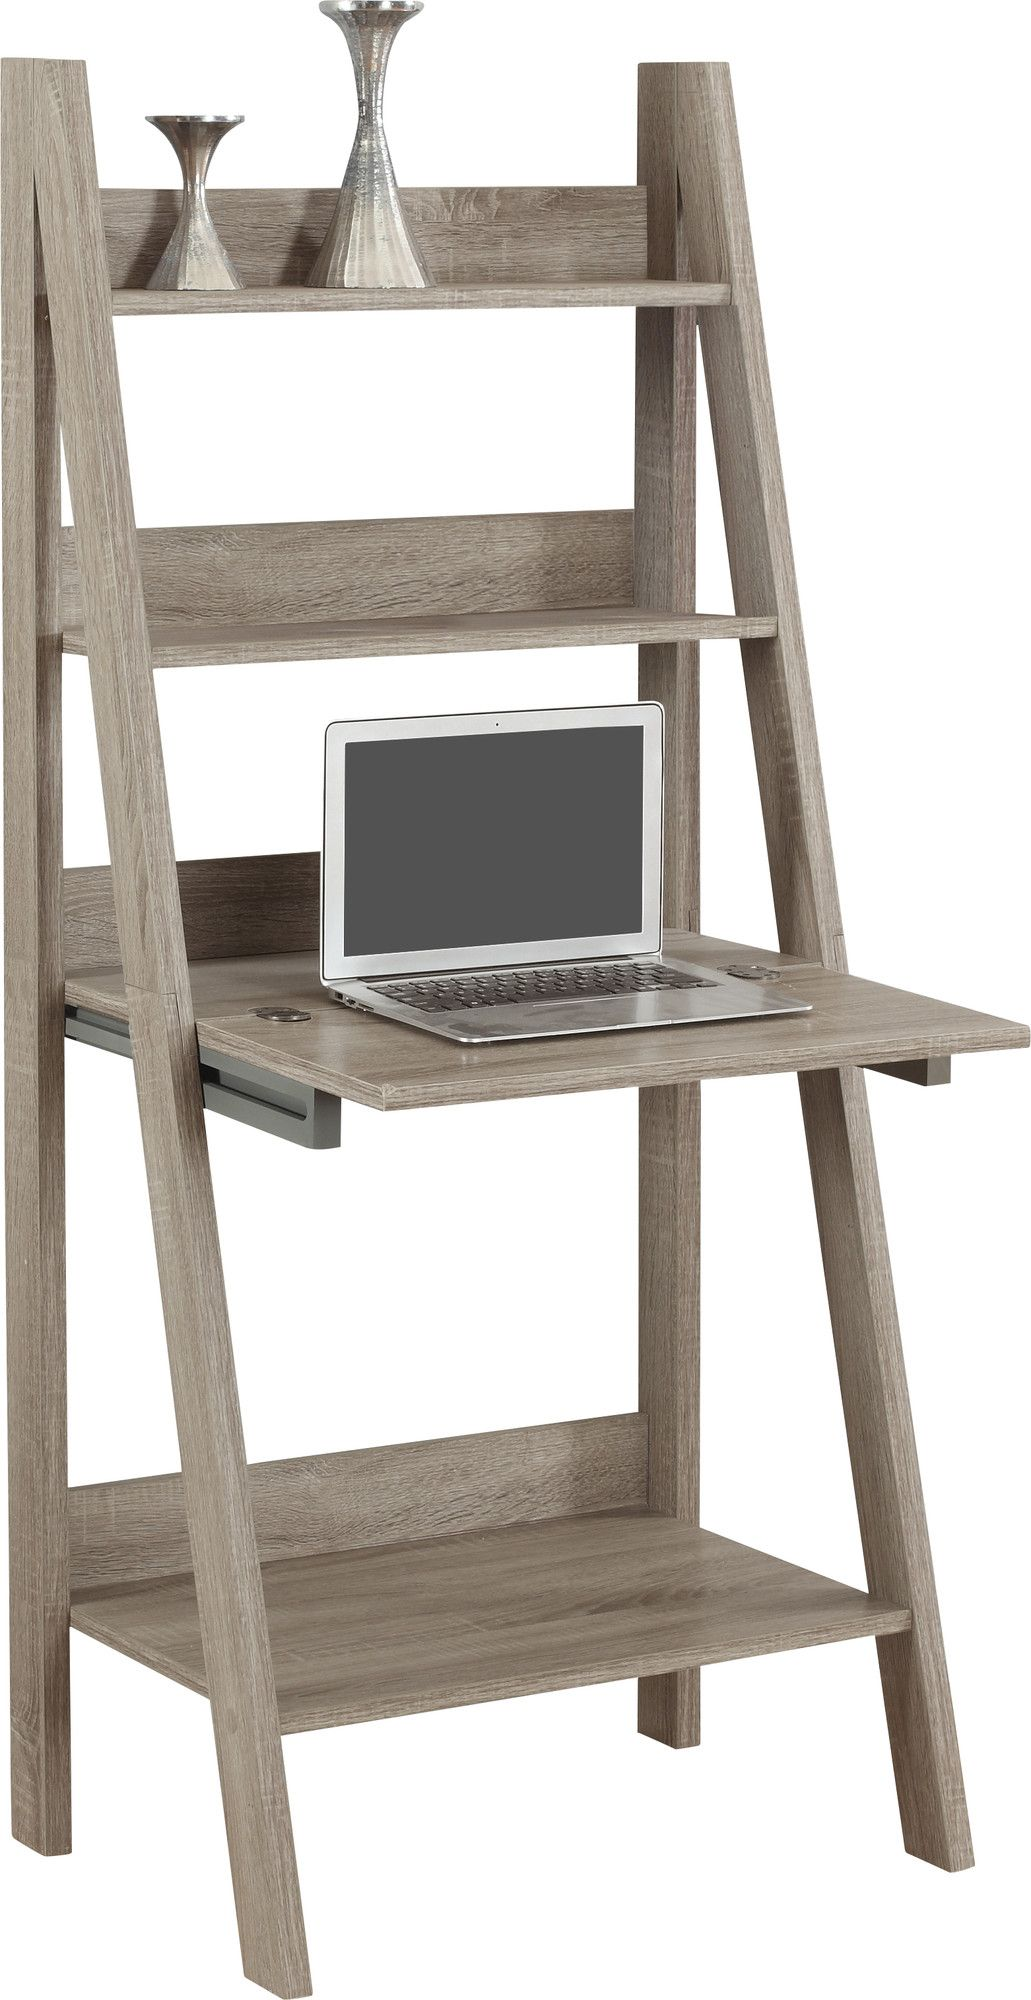 Shelby leaningladder desk shelves pinterest desks